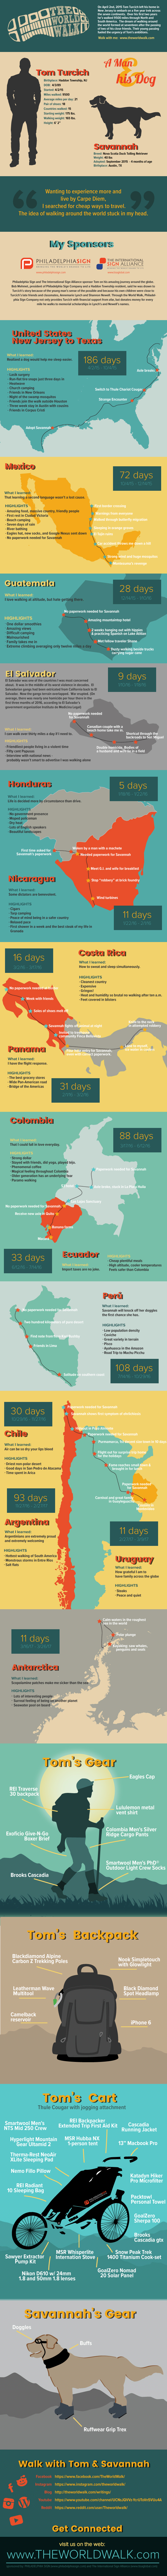 The World Walk Journey Western Hemisphere Infographic